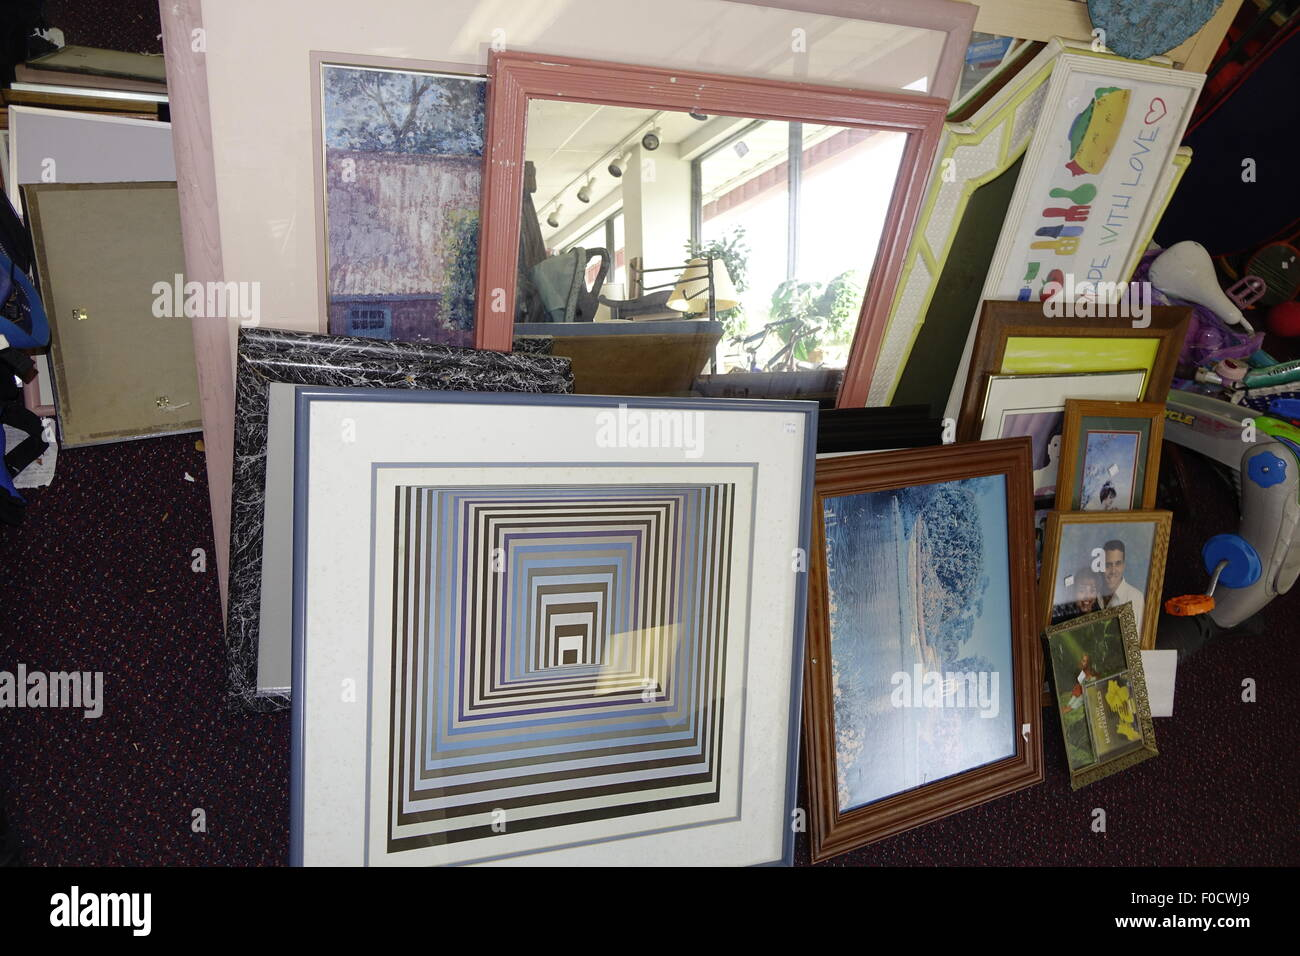 Thrift shop display of photos, mirrors and frames - Stock Image